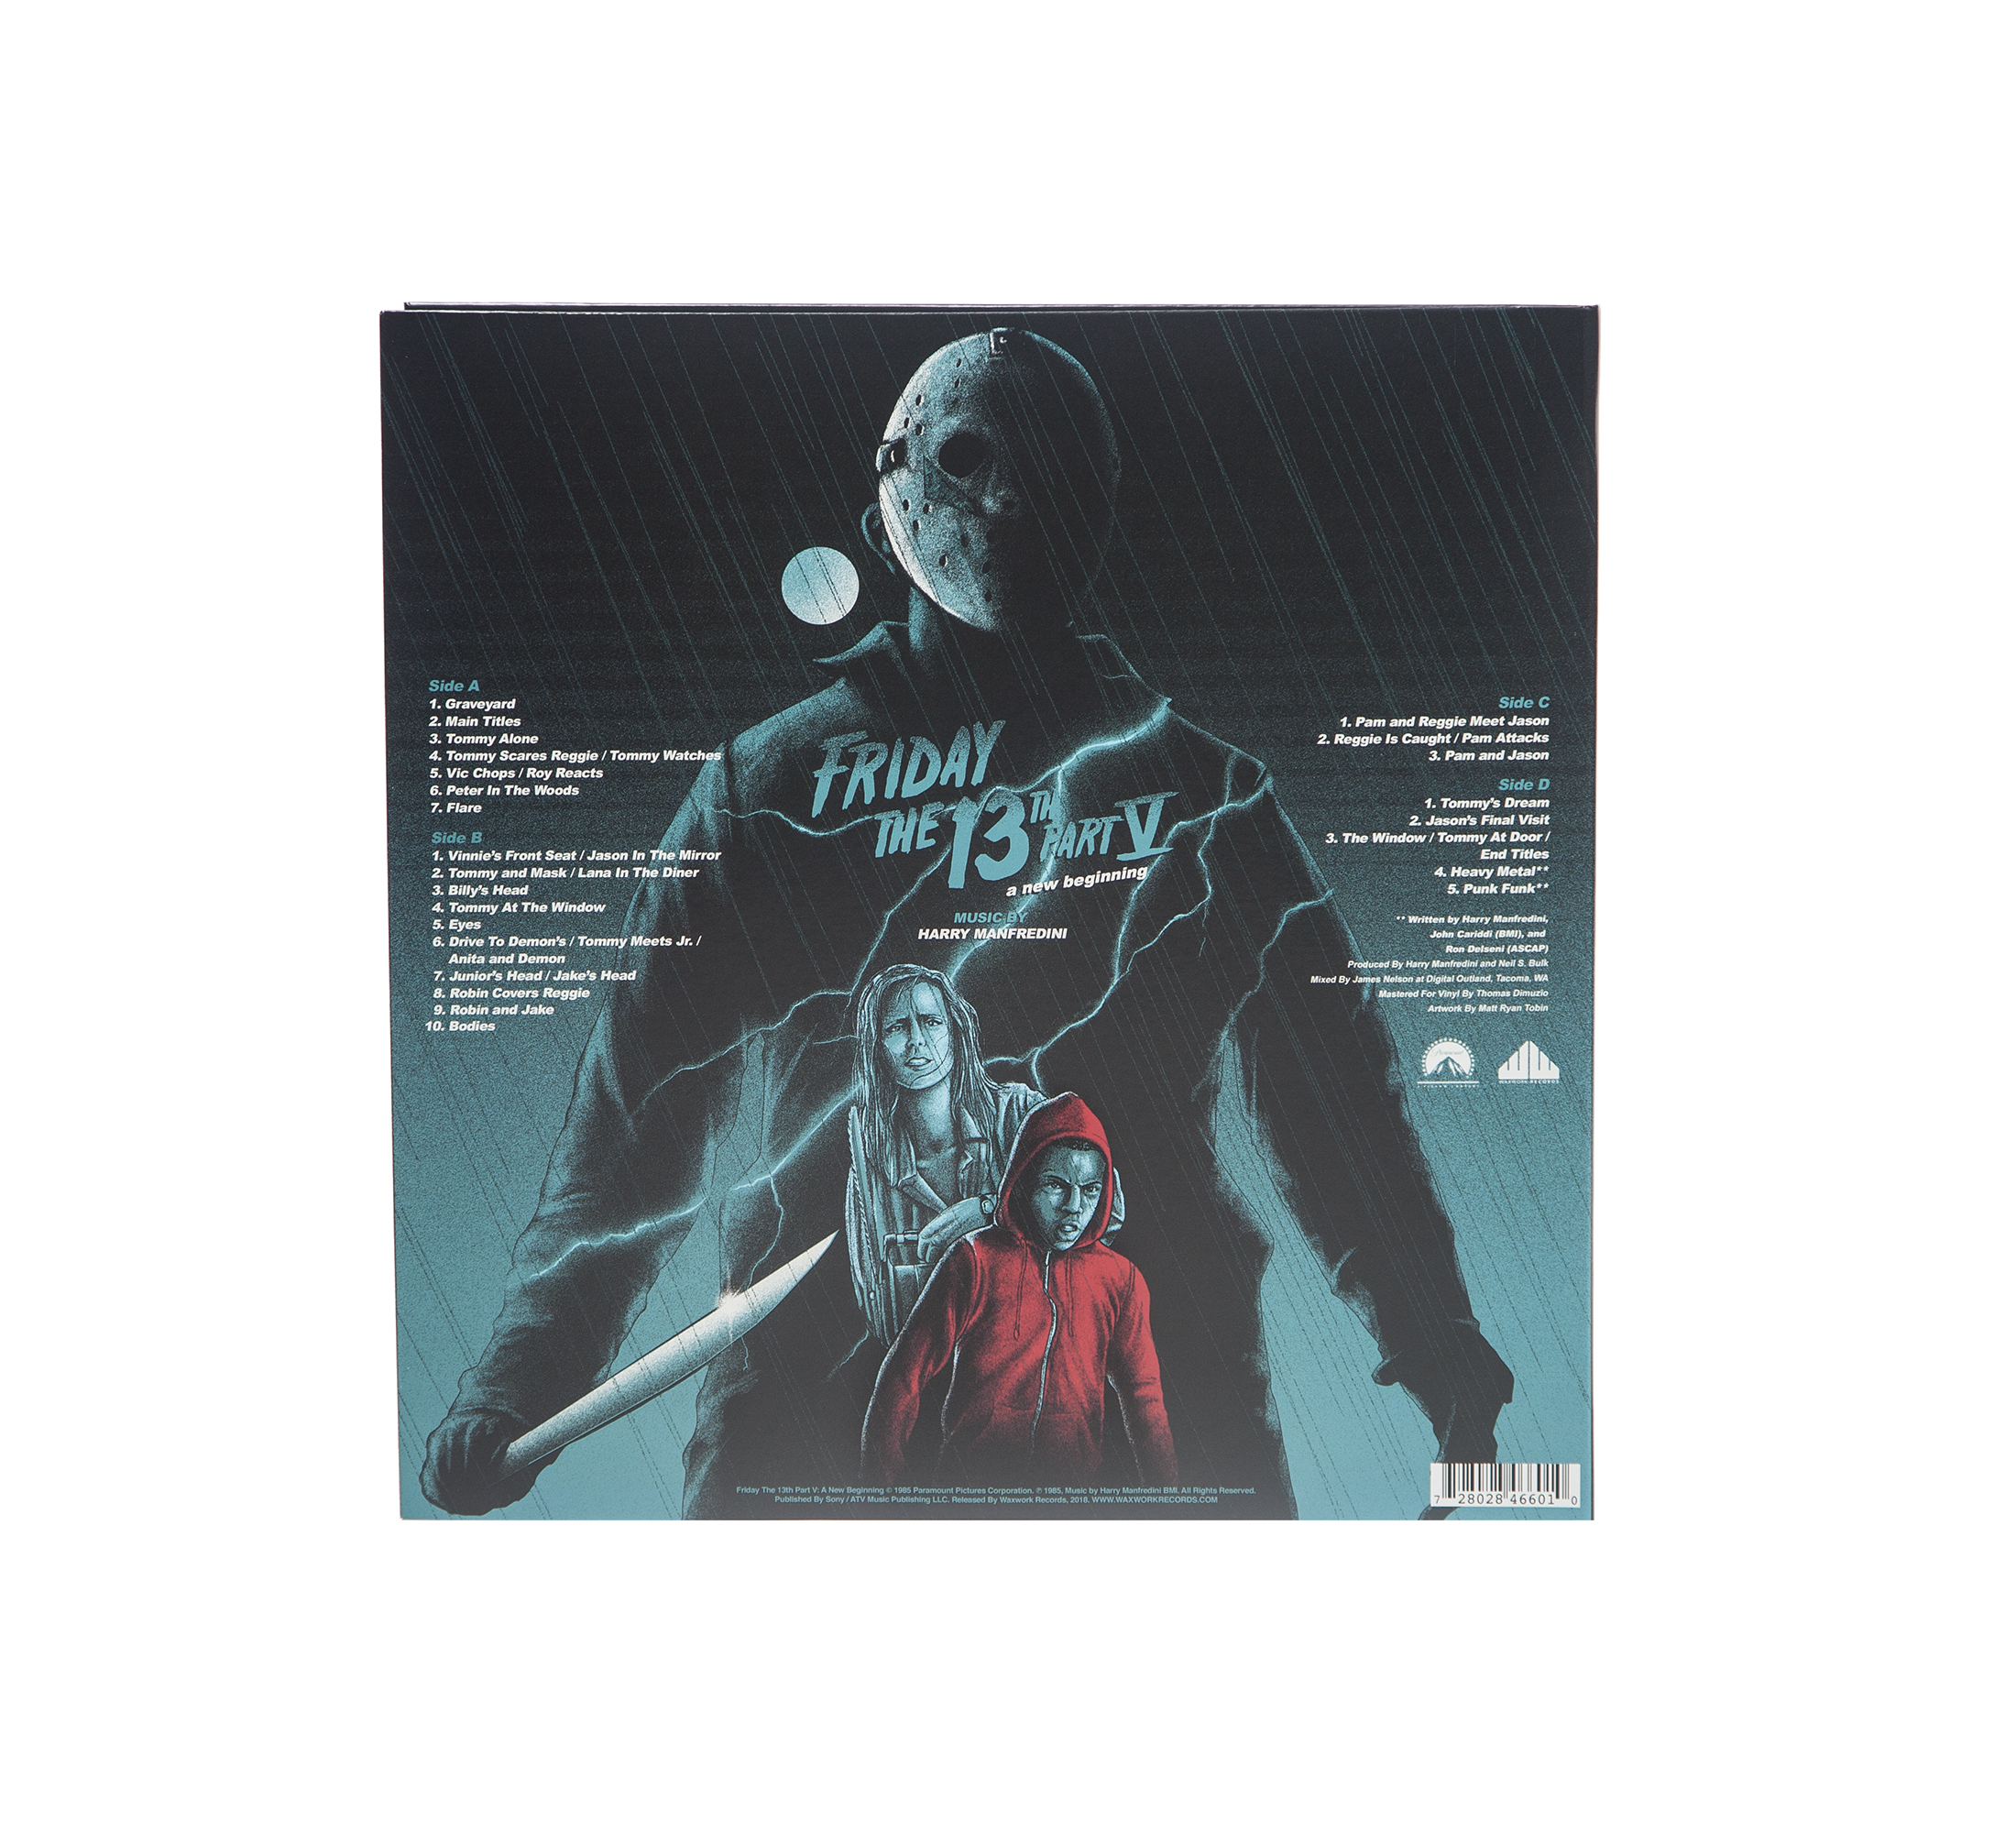 Friday The 13th Part V A New Beginning (Original Soundtrack)